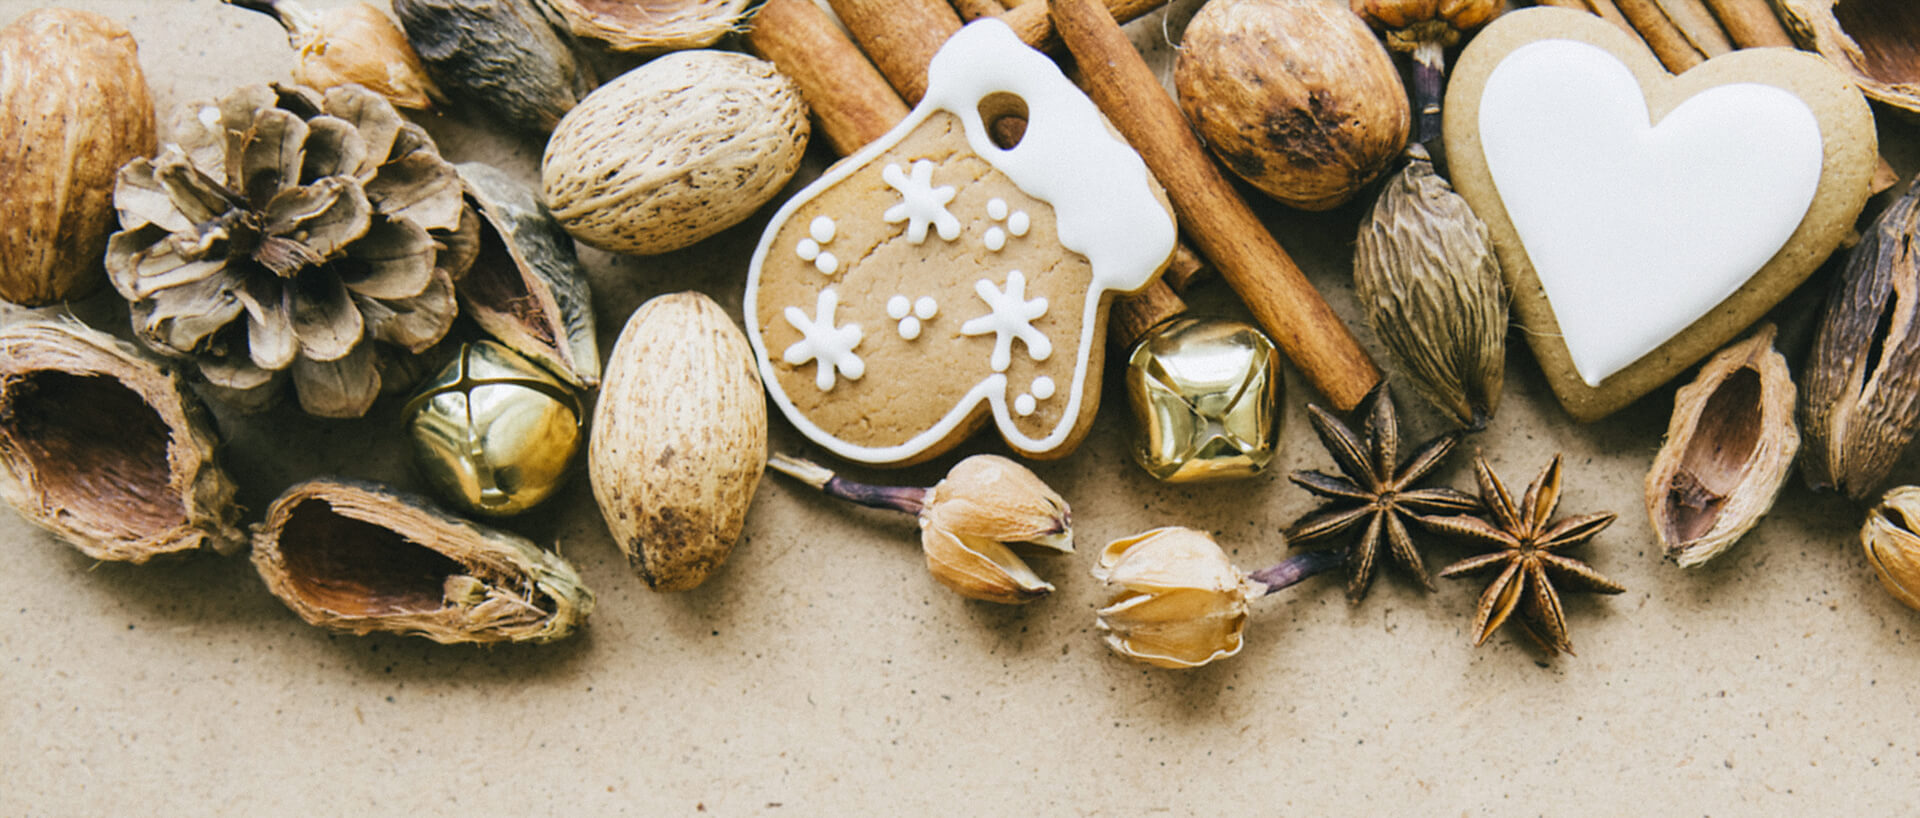 Variety of Christmas cookies, nuts and spices